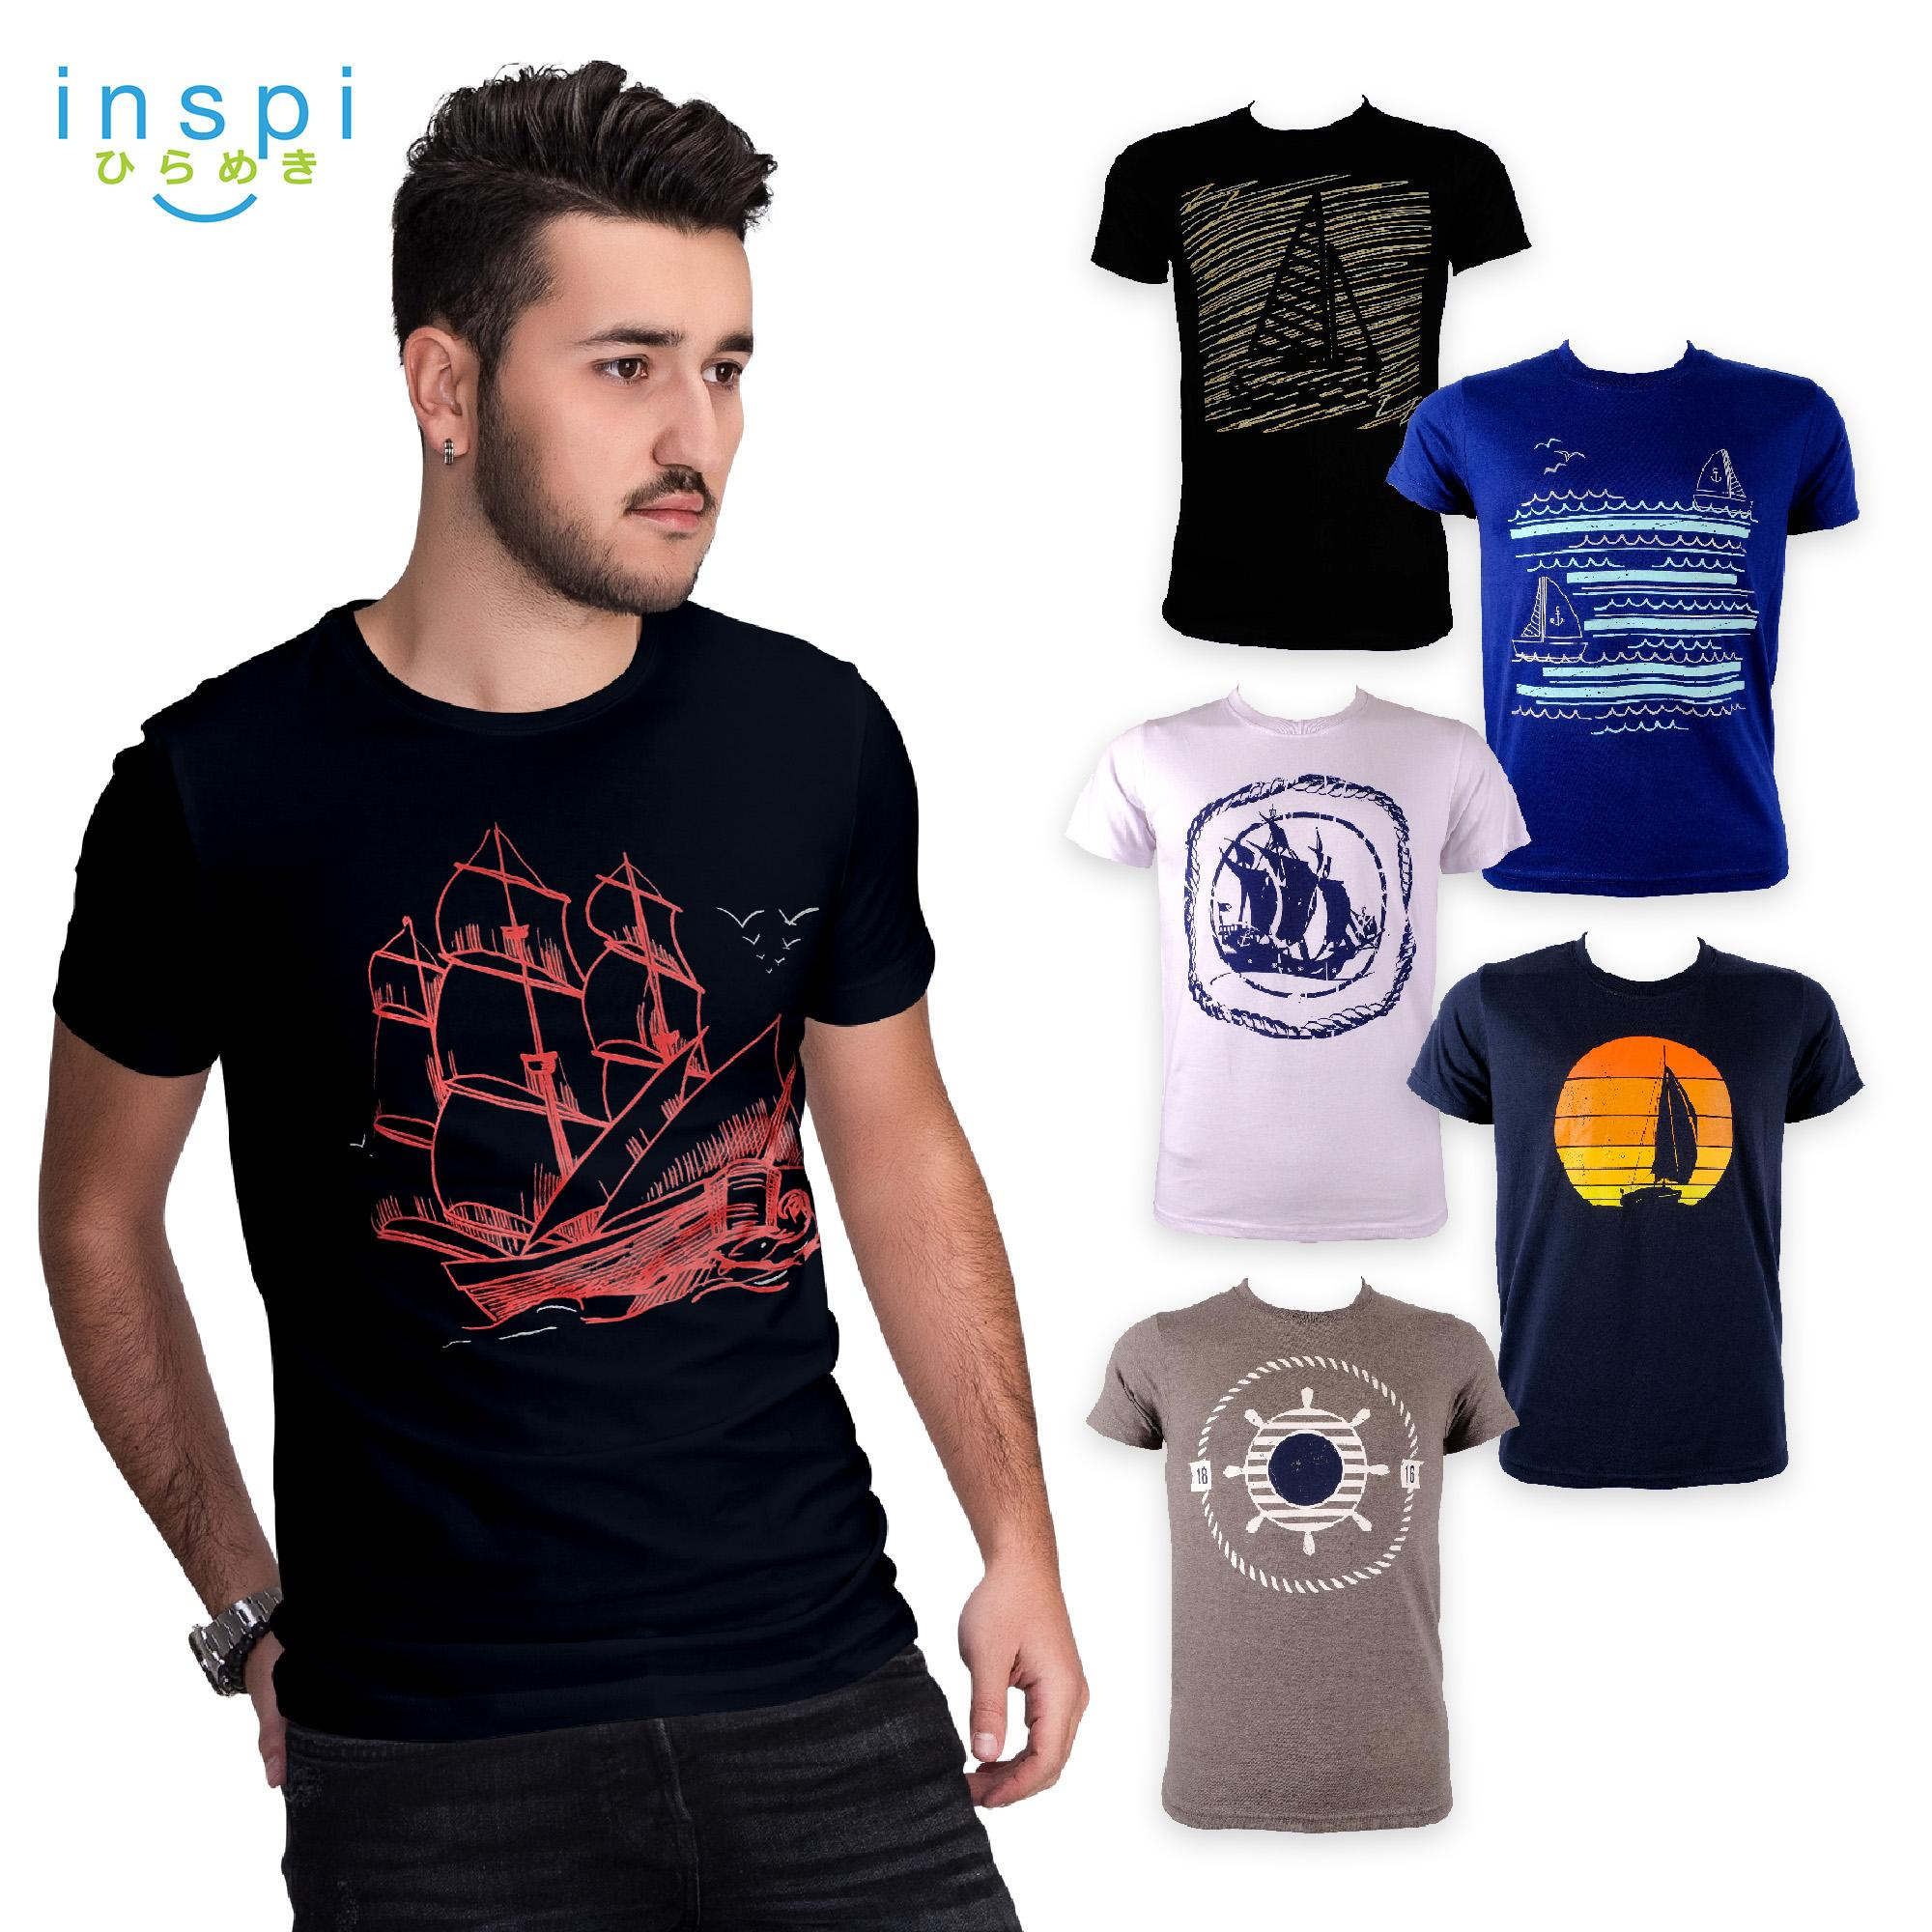 c3268c3ad80 INSPI Tees Sailing Collection tshirt printed graphic tee Mens t shirt shirts  for men tshirts sale